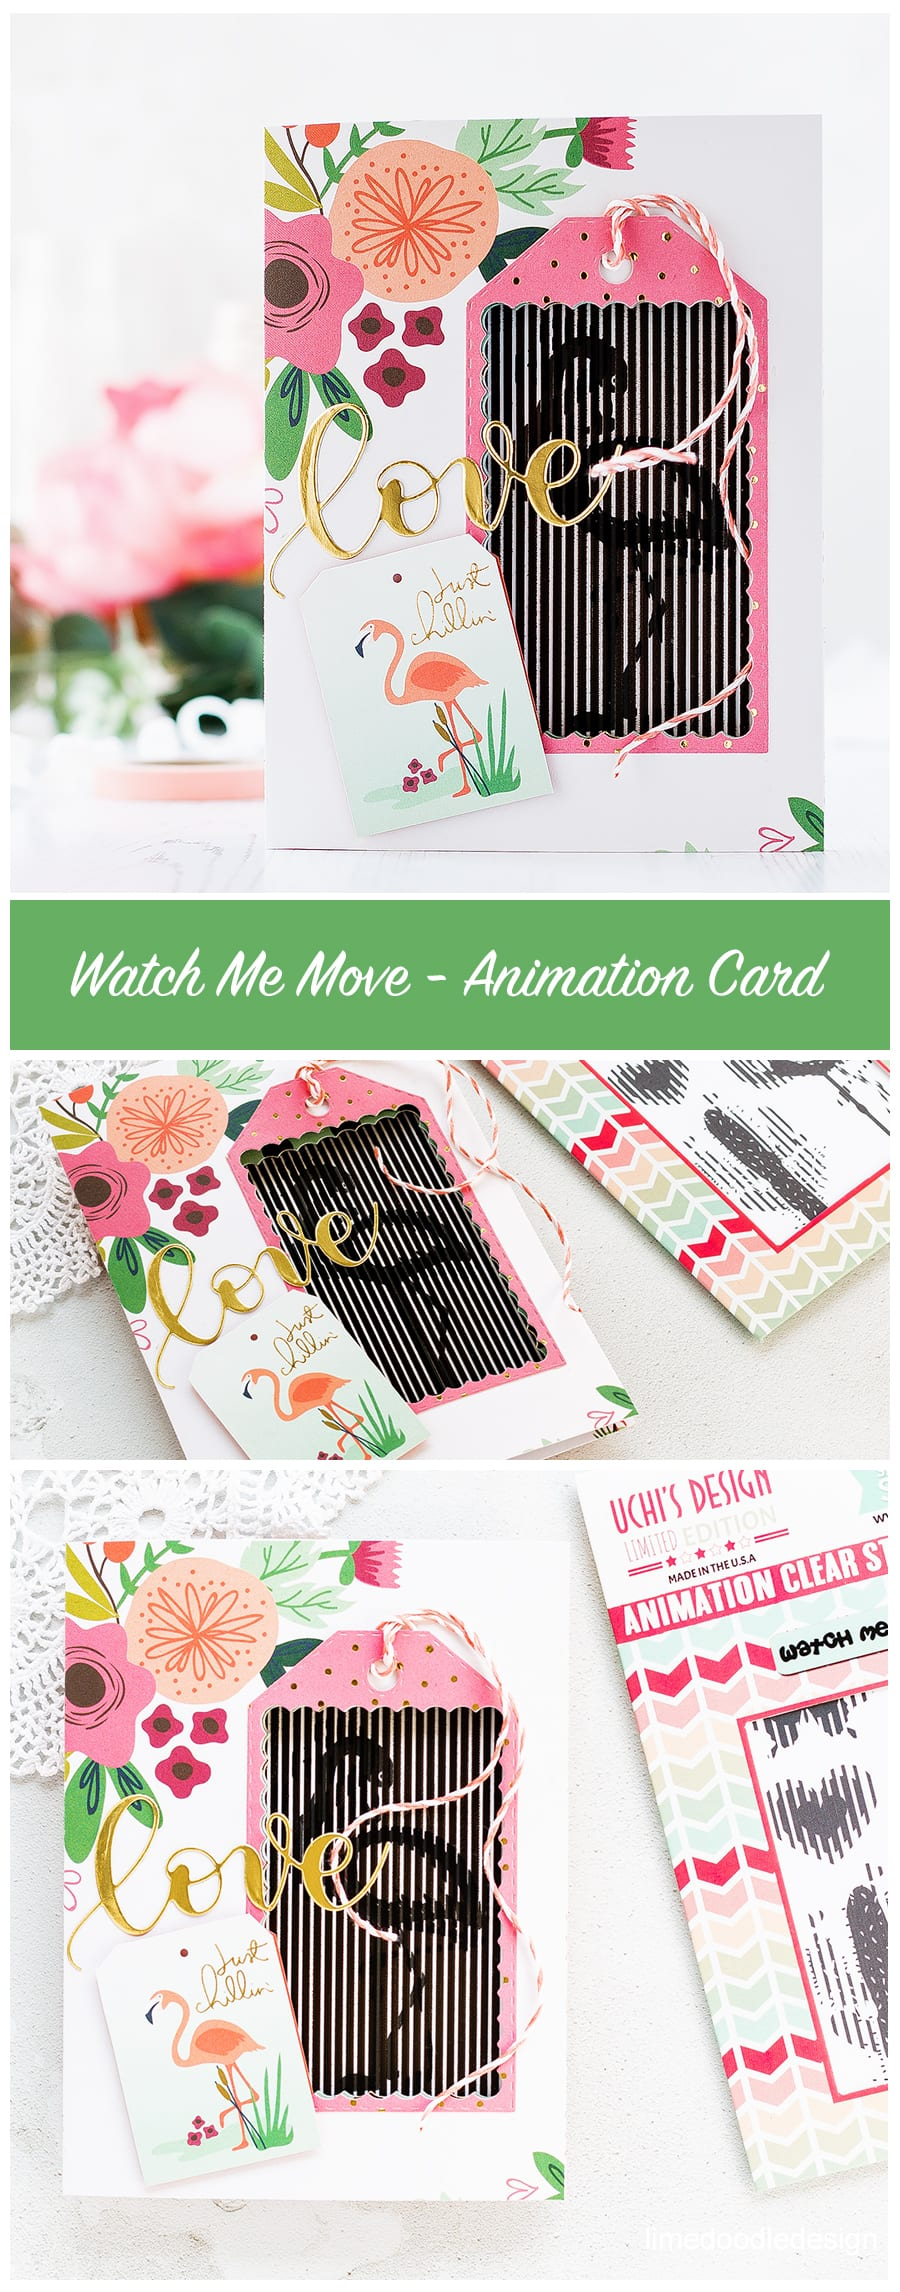 A look (including video) at the innovative animation stamps from Uchi's Design. Find out more about this card by clicking on the following link: https://limedoodledesign.com/2017/04/video-watch-me-move-animation-card/